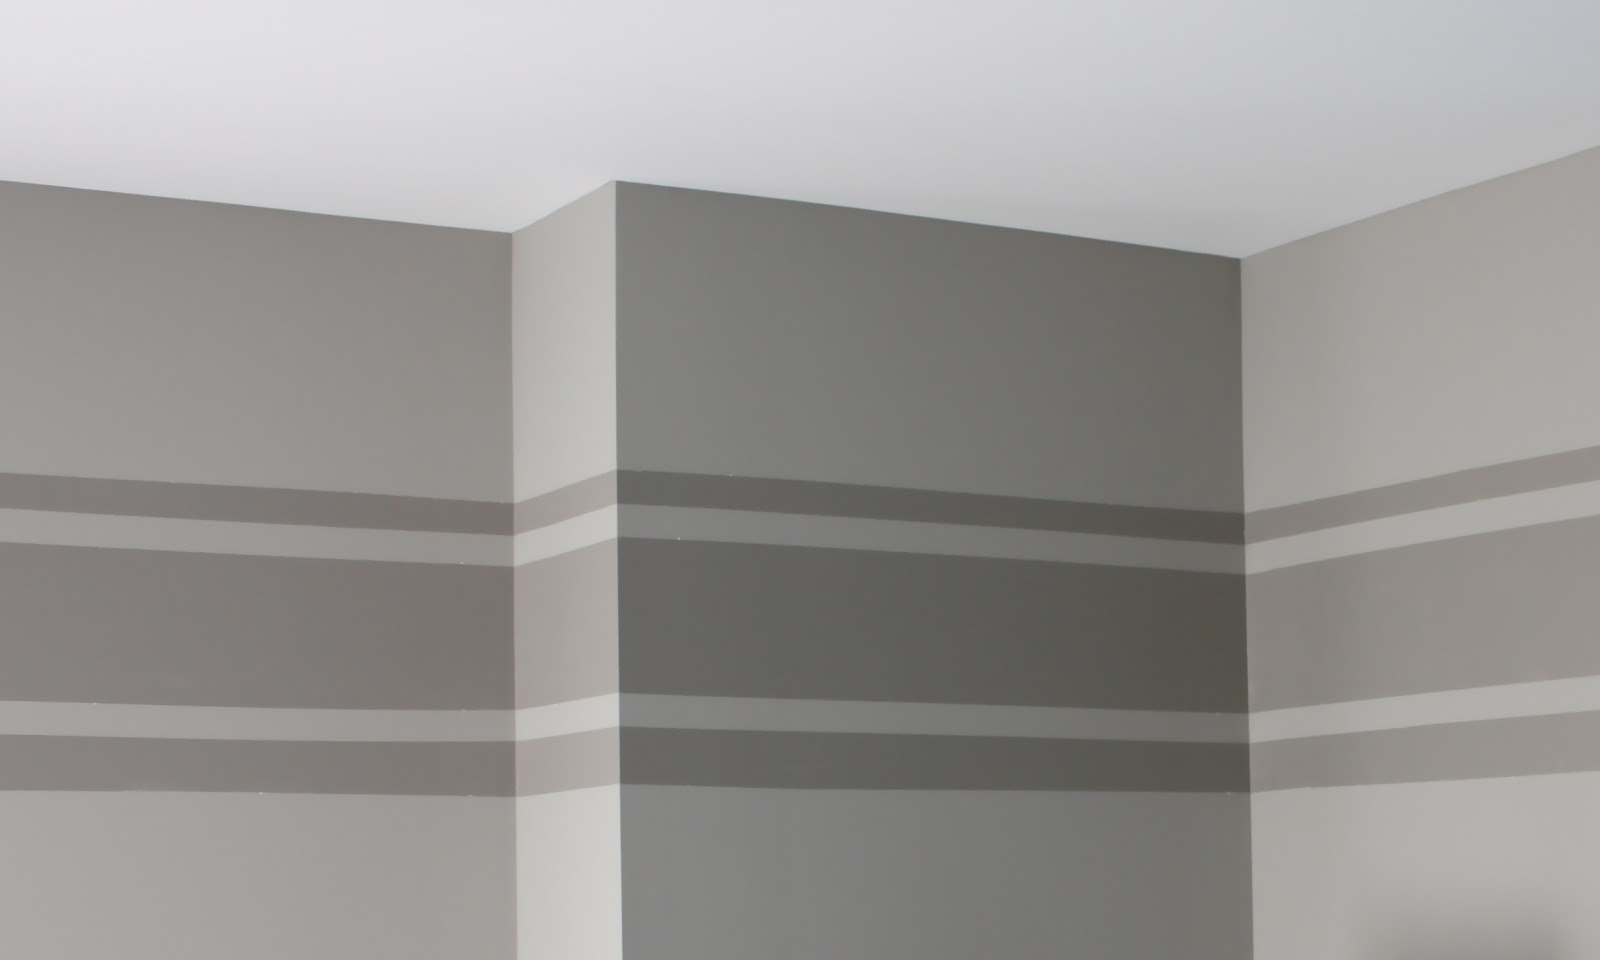 Painting-stripes-on-walls-picture